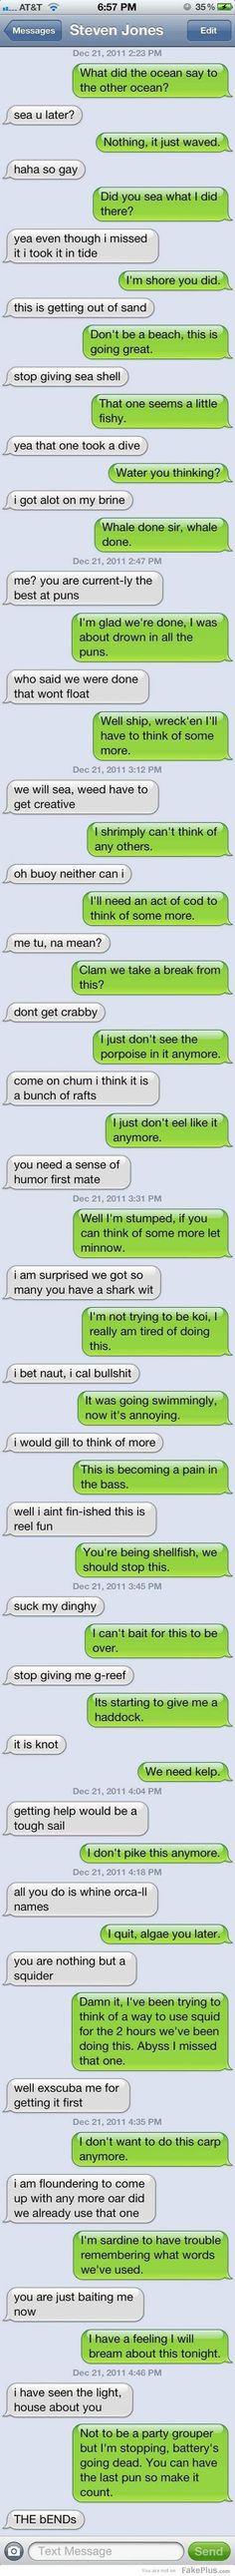 I cannot wait to have this type of conversation with my bestie in the Navy.